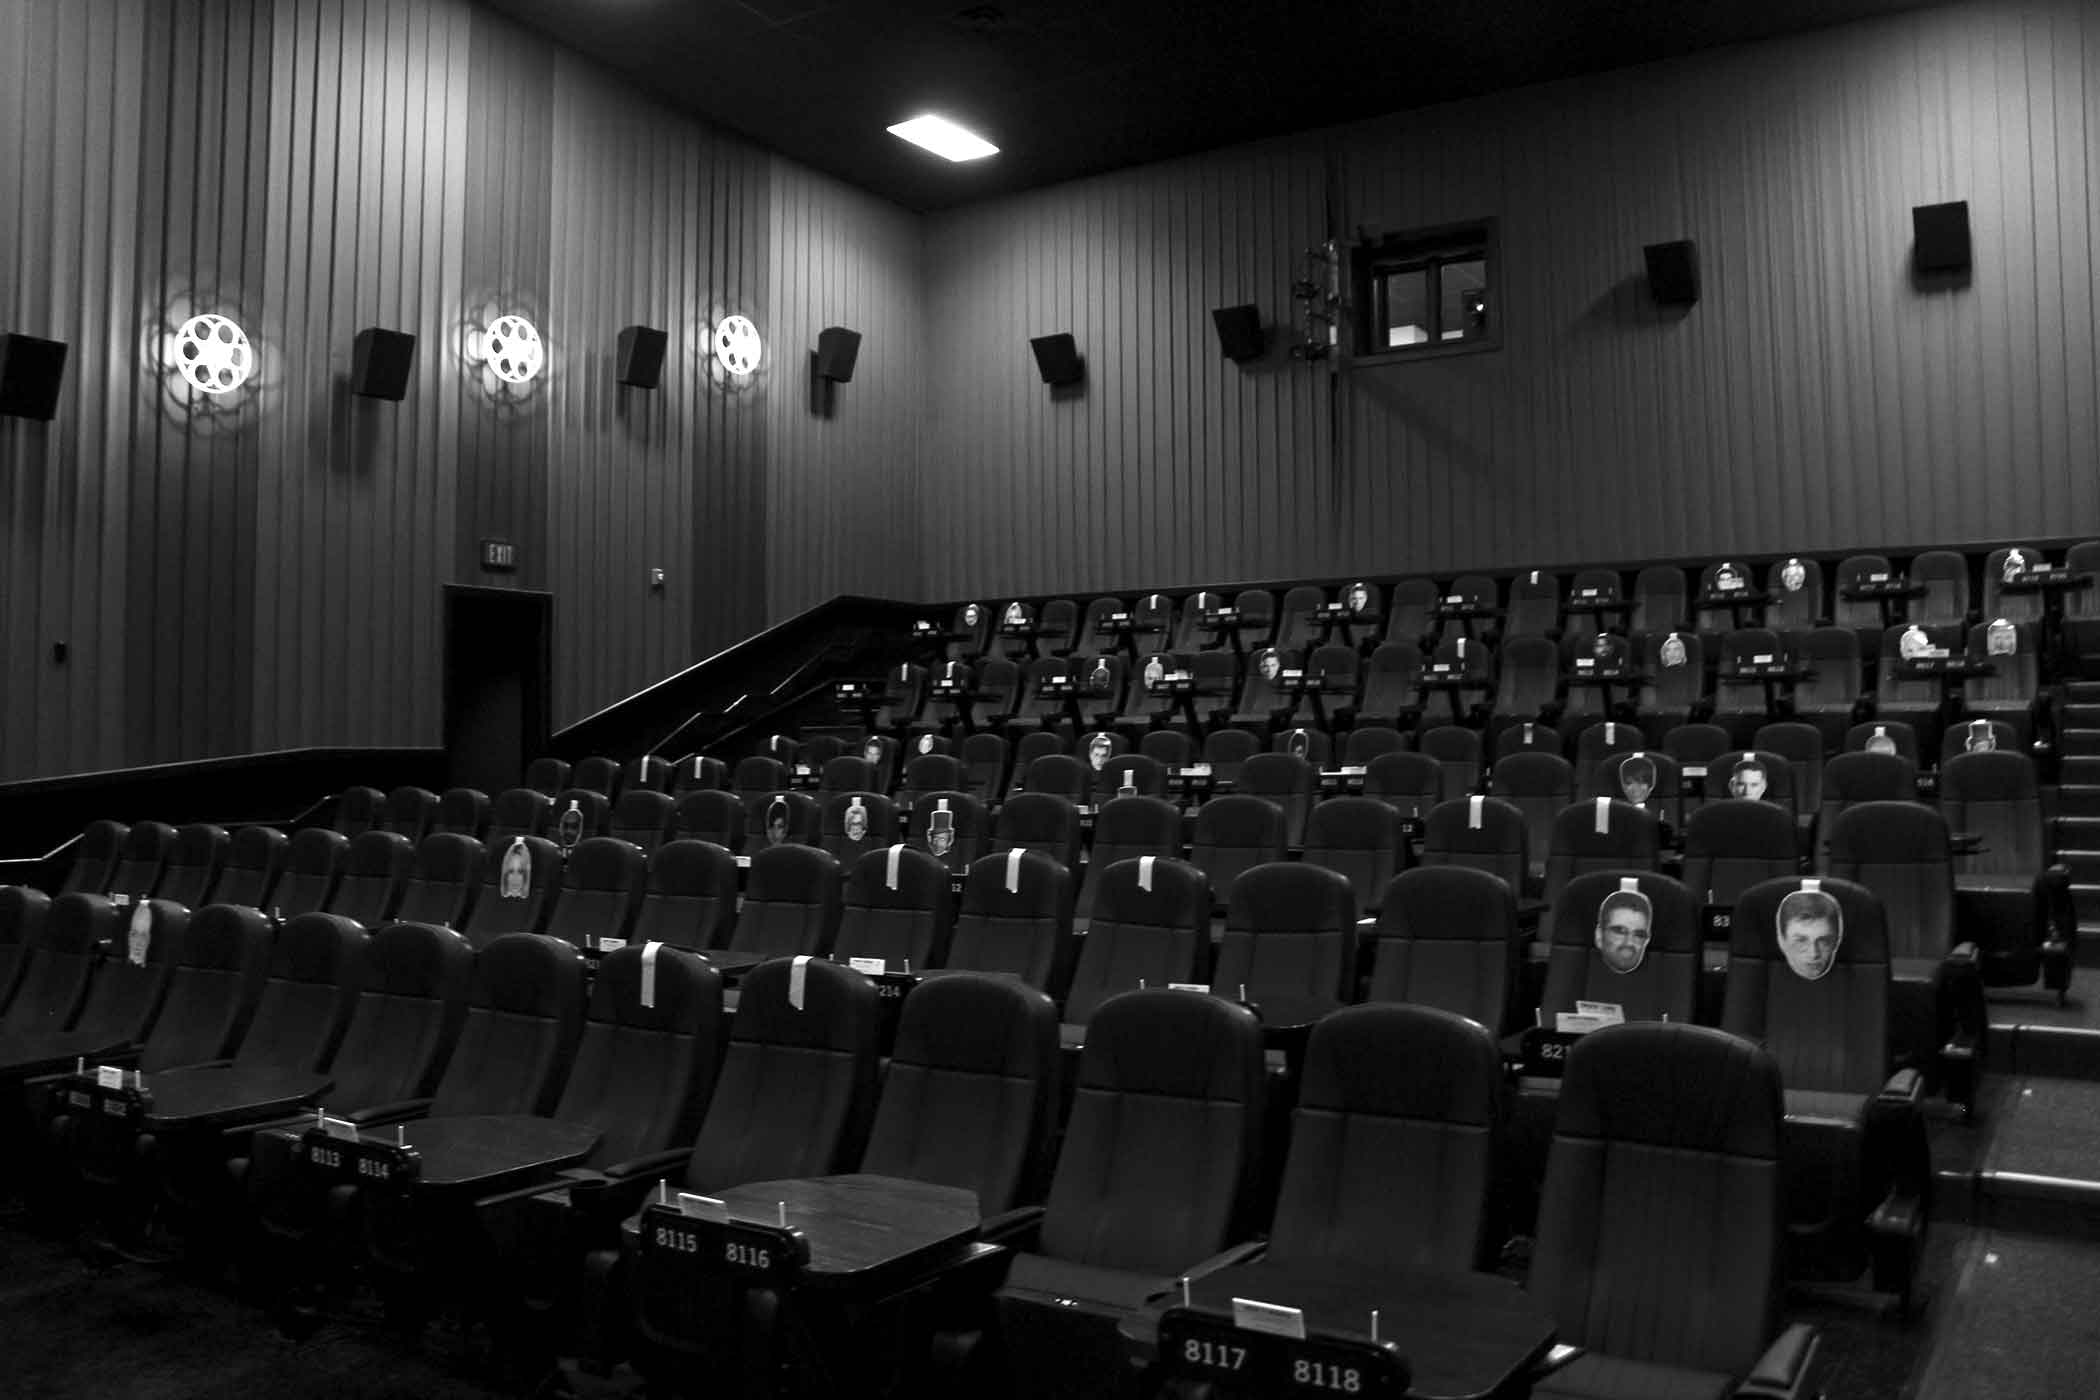 The Alamo Drafthouse is located at 250 E. Montecillo in west El Paso and will officially open on May 6.